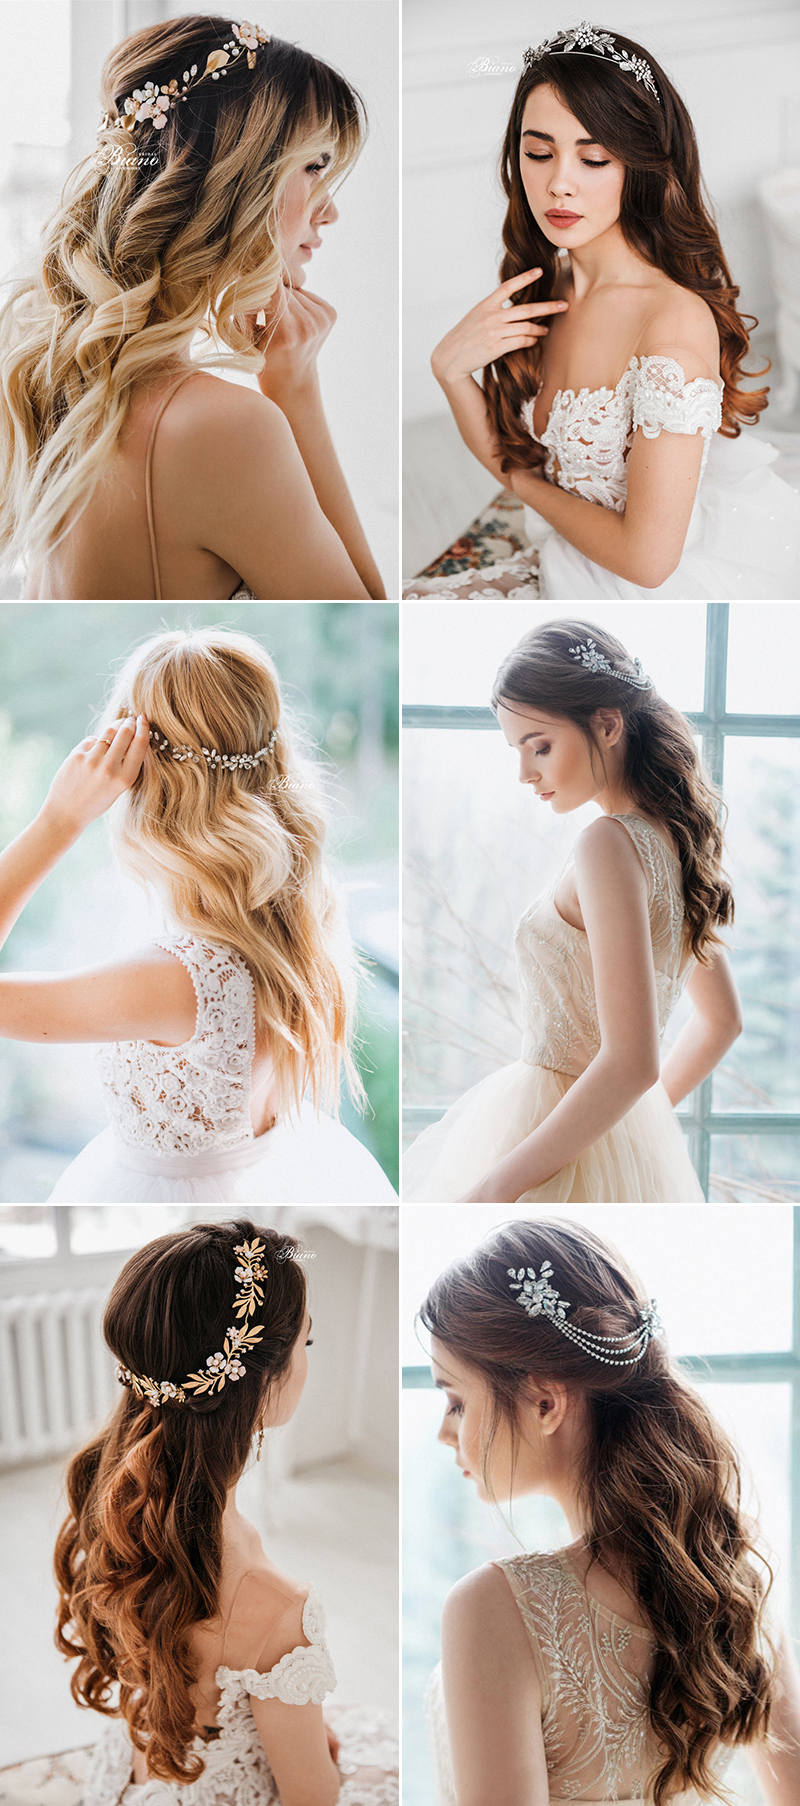 23 Gorgeous Bridal Hair Accessories For Every Wedding Hairstyle